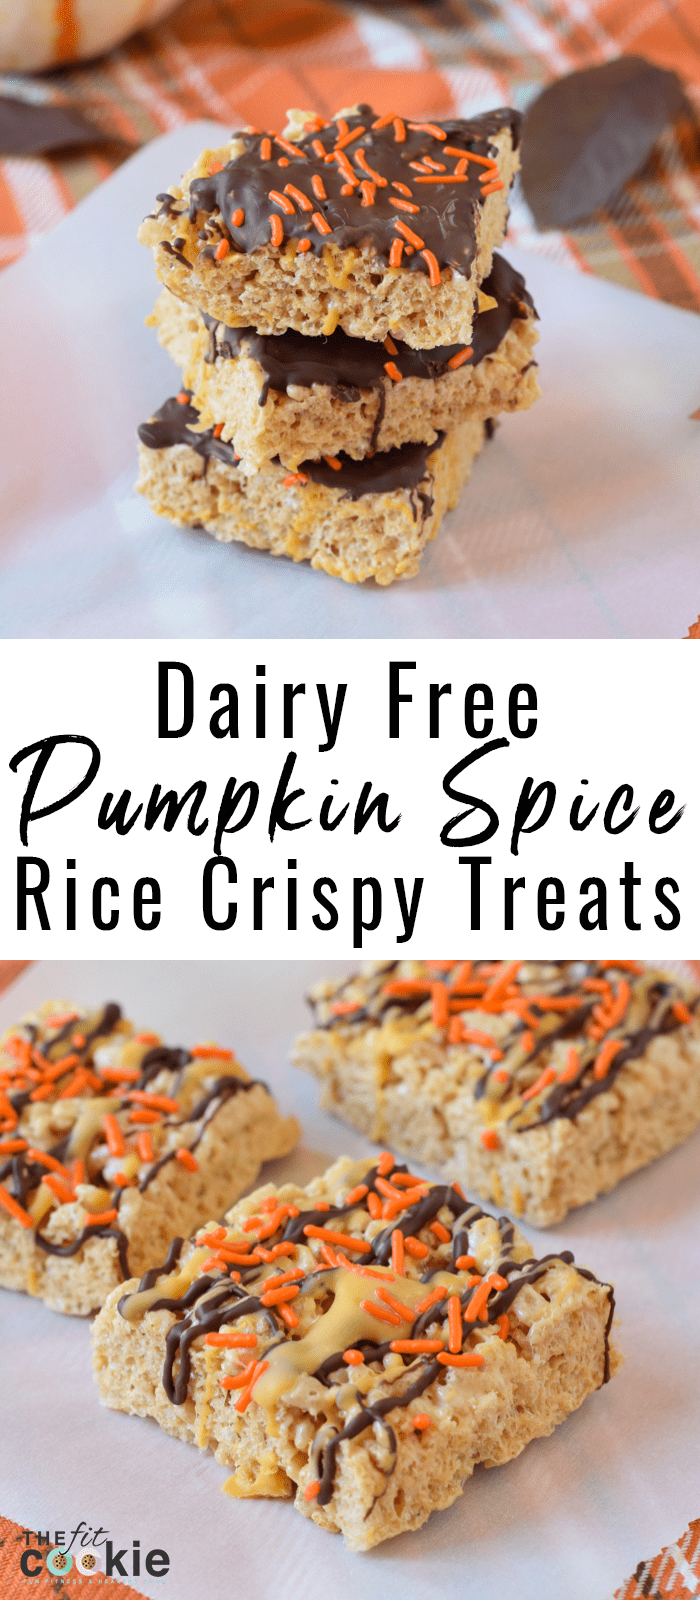 image collage of dairy free gluten free pumpkin spice rice crispy treat with orange spinkles